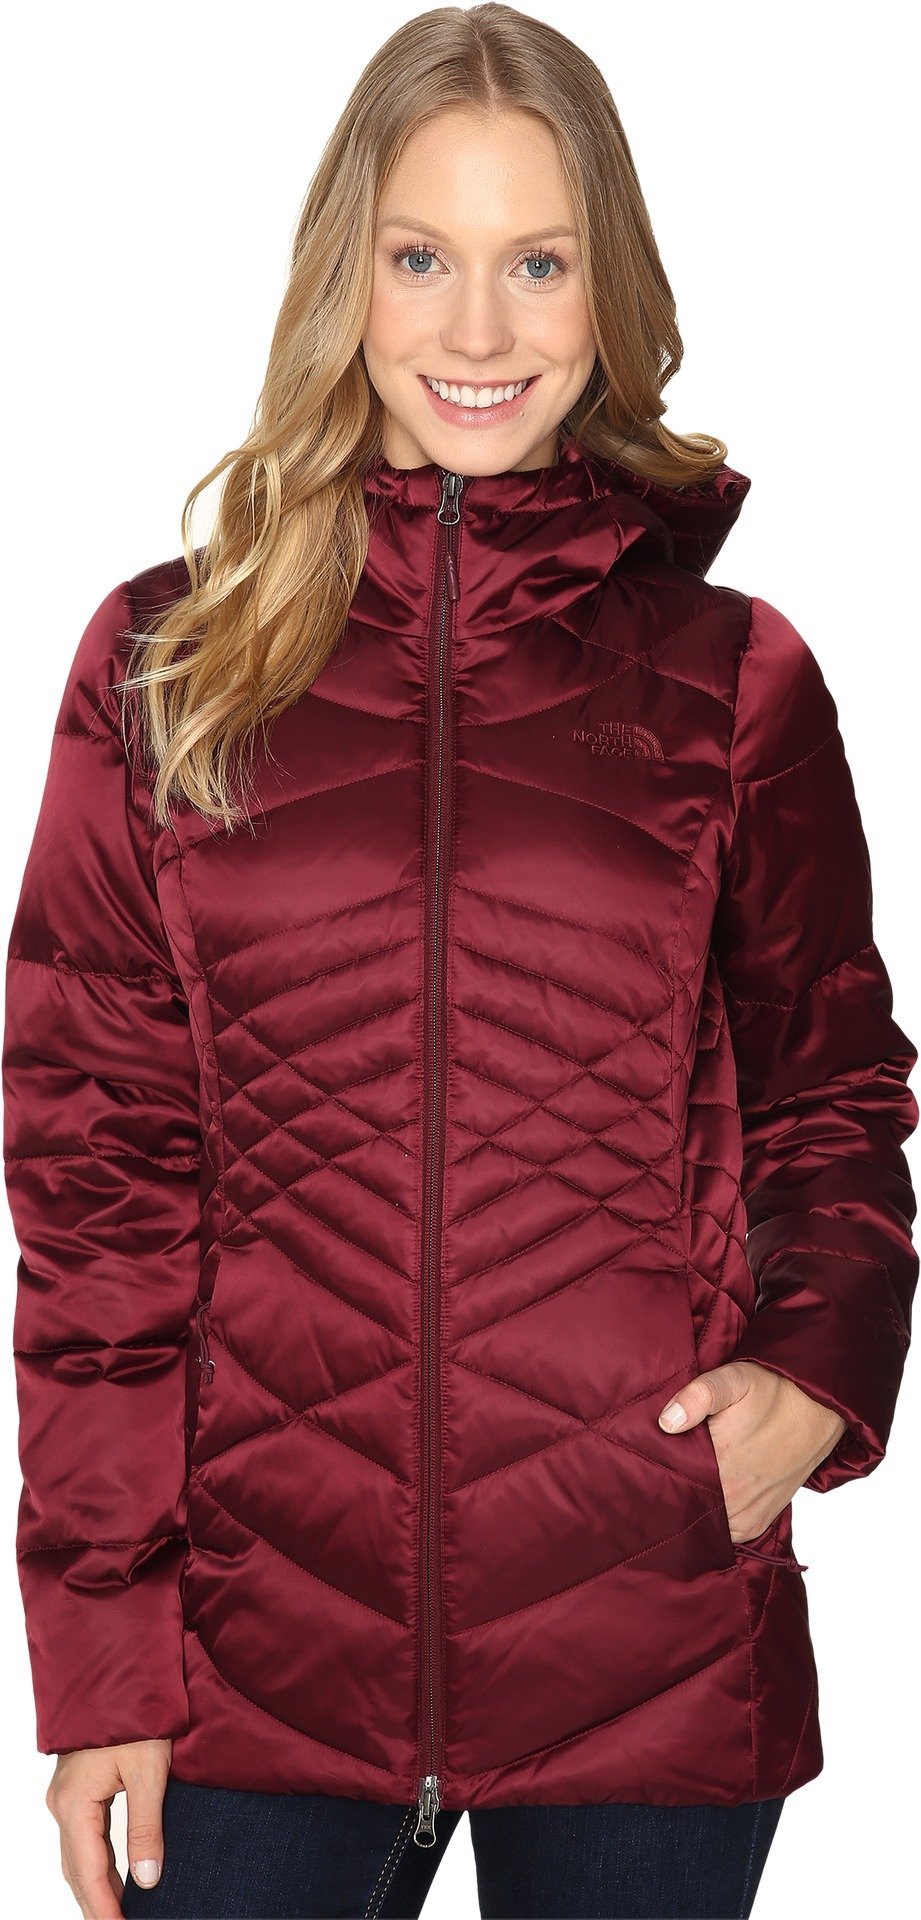 The North Face Women's Aconcagua Parka Deep Garnet Red (Prior Season) Large